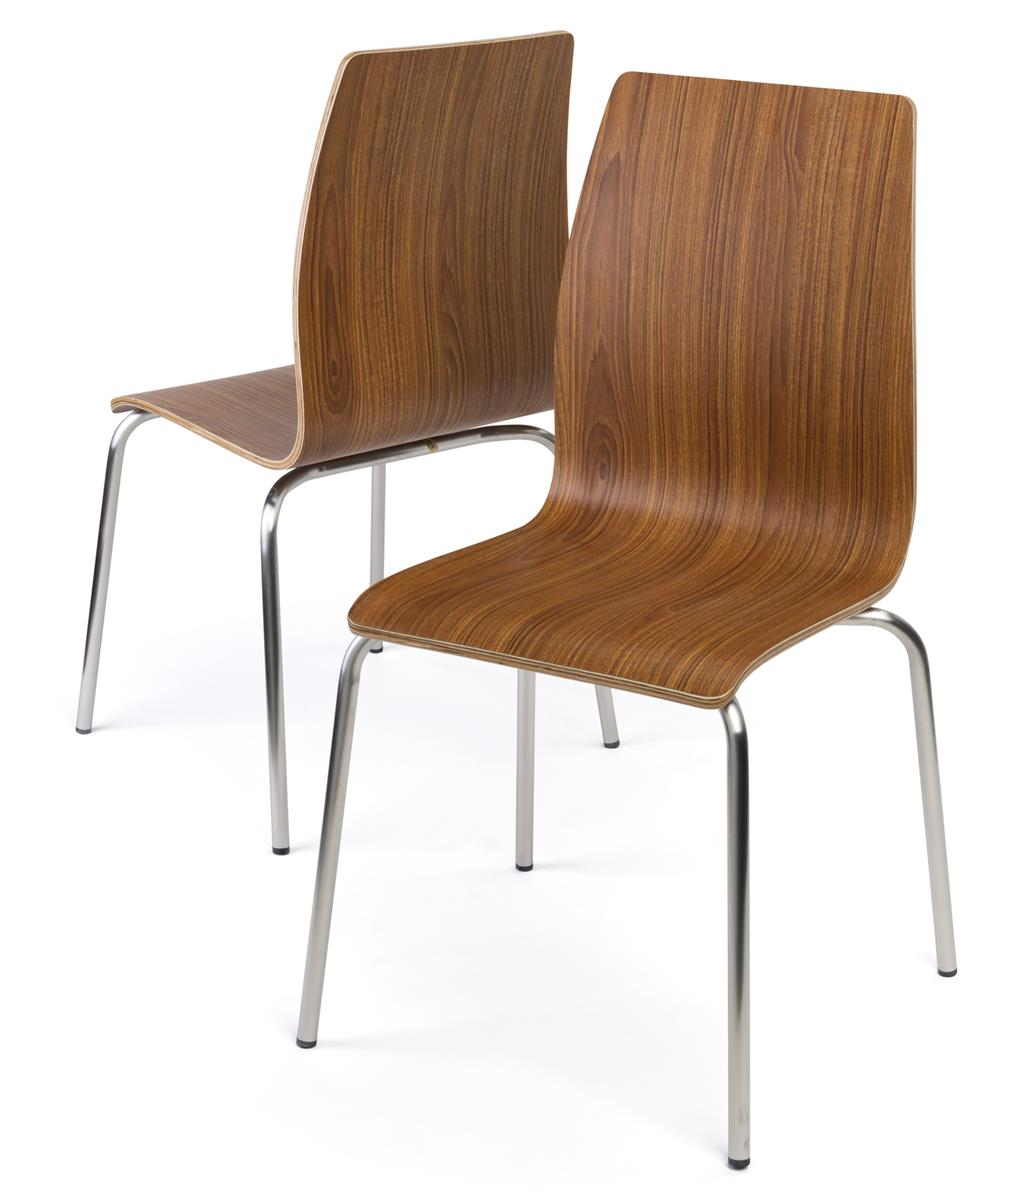 16 5 Bentwood Chair W Stainless Steel Legs Set Of 2 Dark Finish